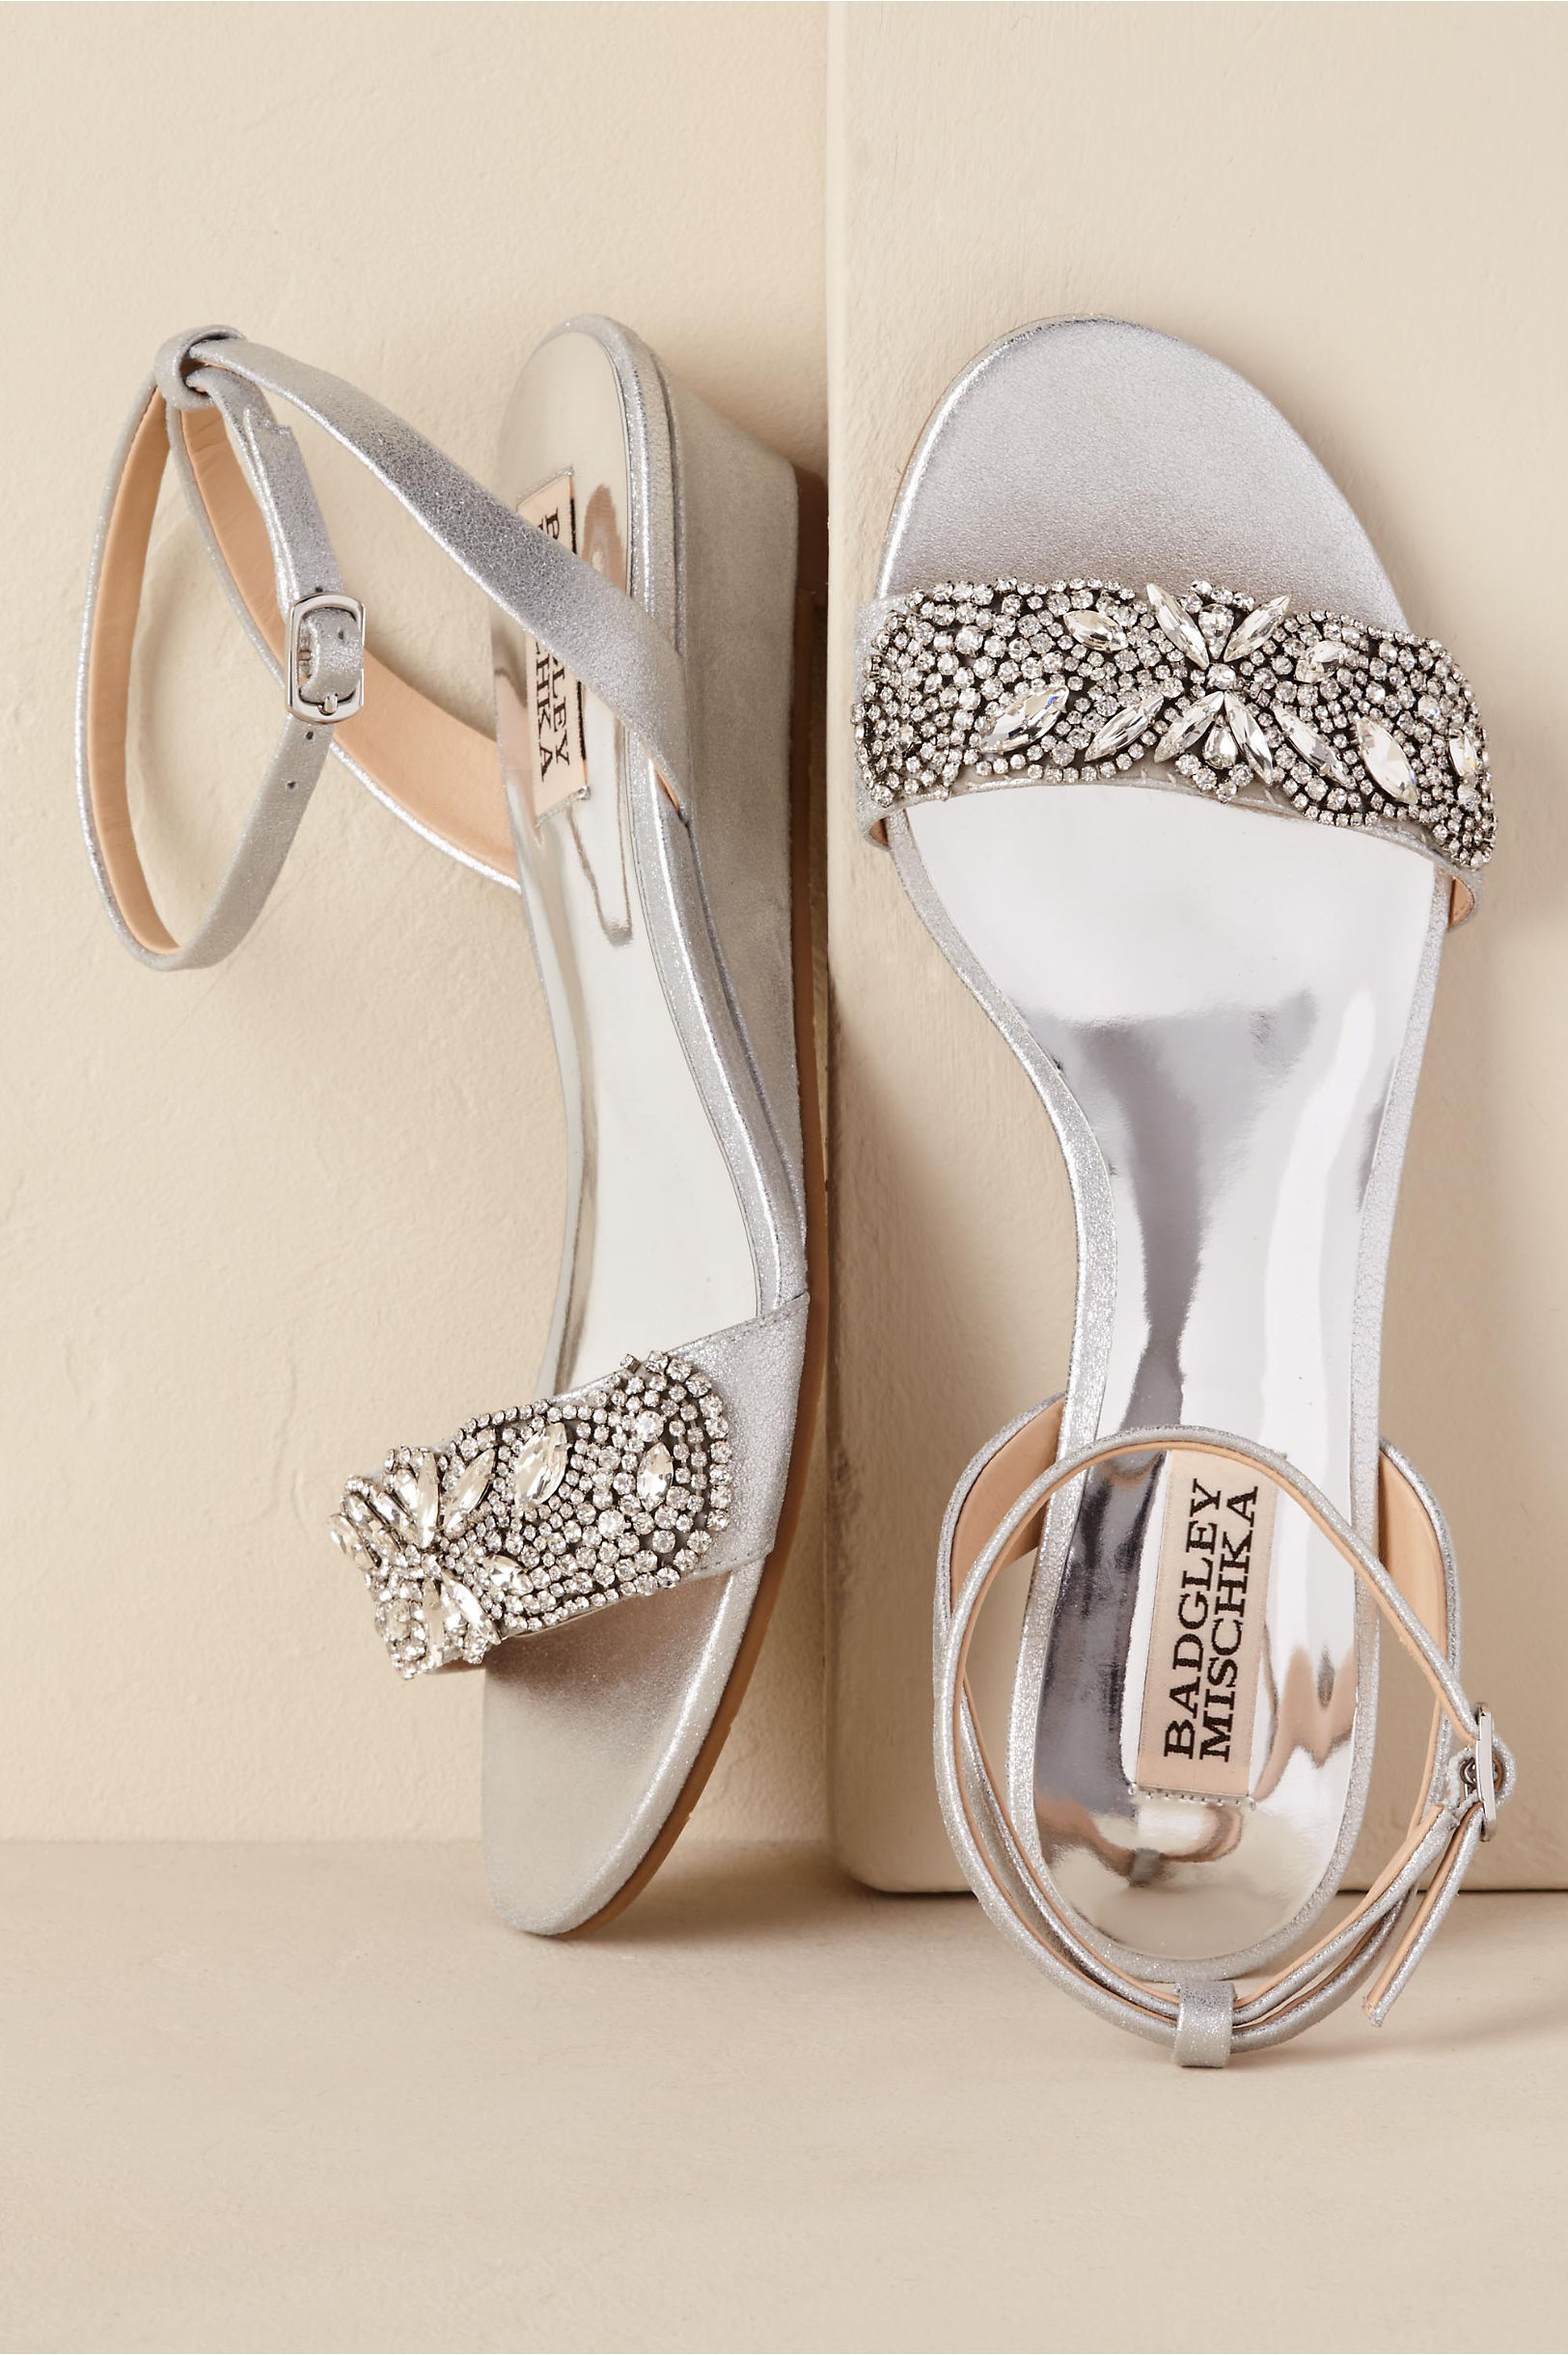 Bhldn Sparkle Demi Wedge Ivory In Shoes Accessories Bhldn Silver Bridal Shoes Wedding Shoes Heels Wedge Wedding Shoes